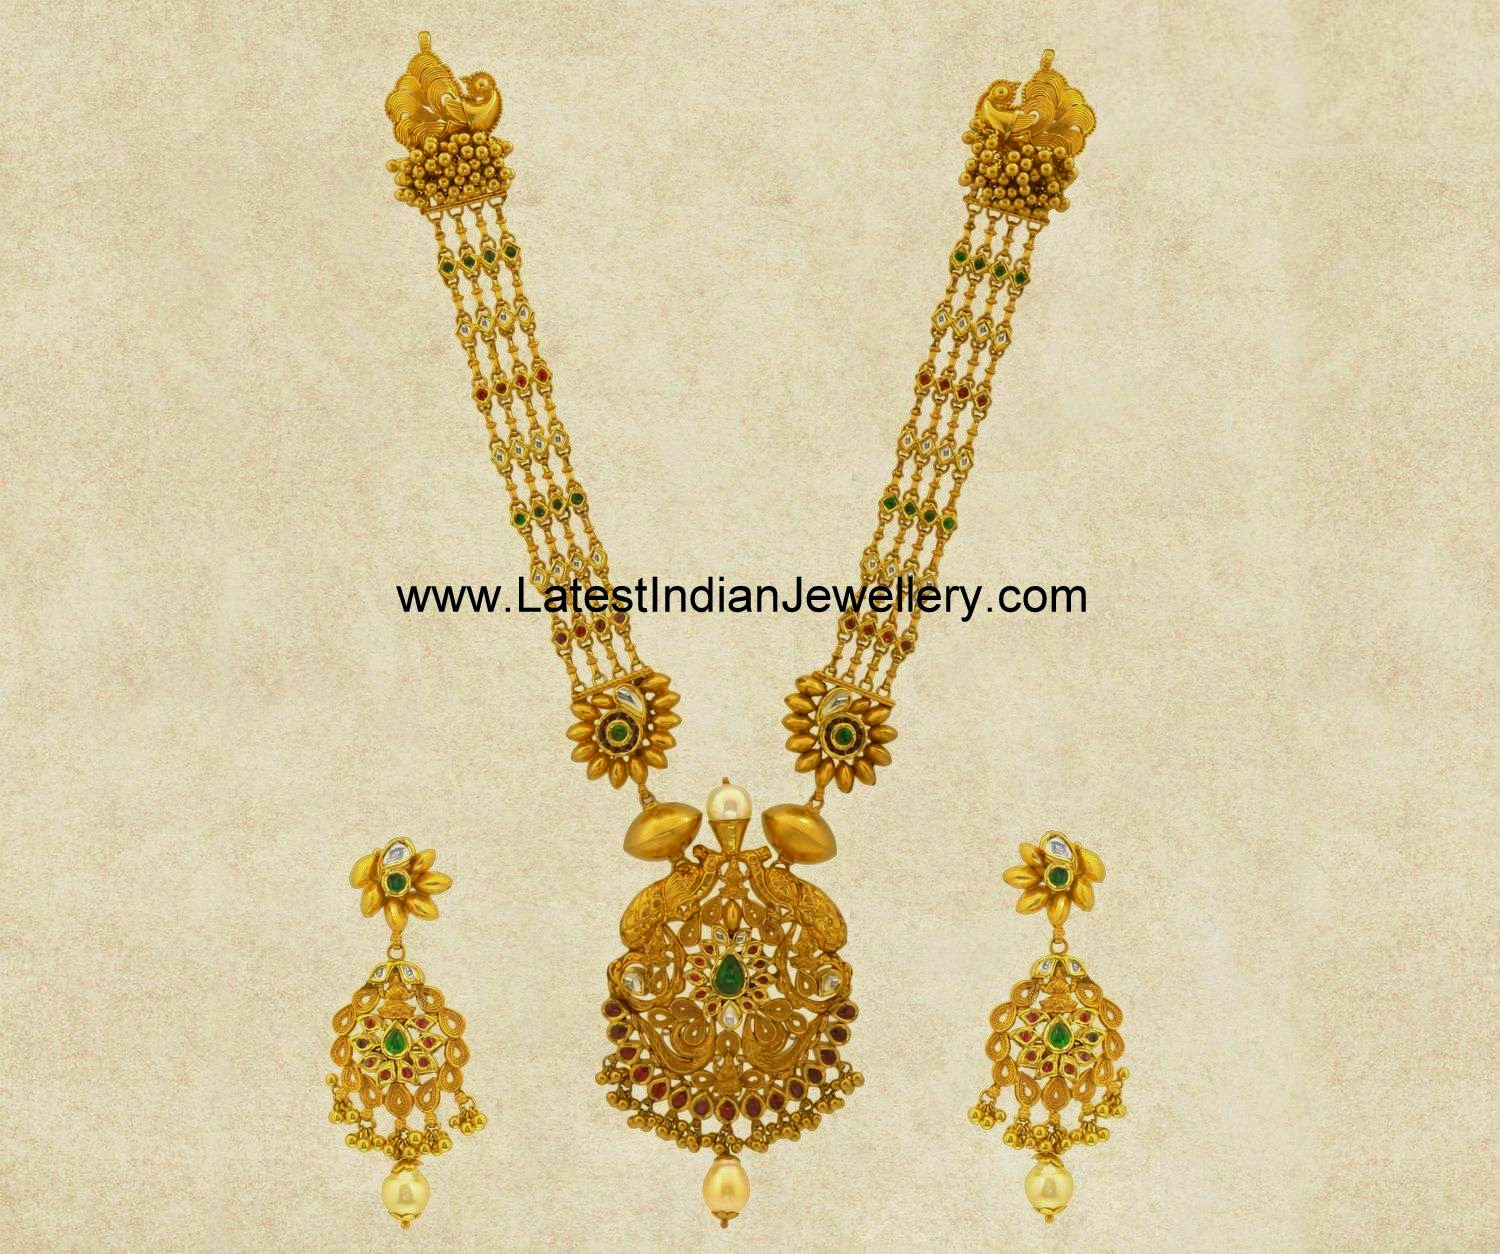 kundans studded long gold necklace